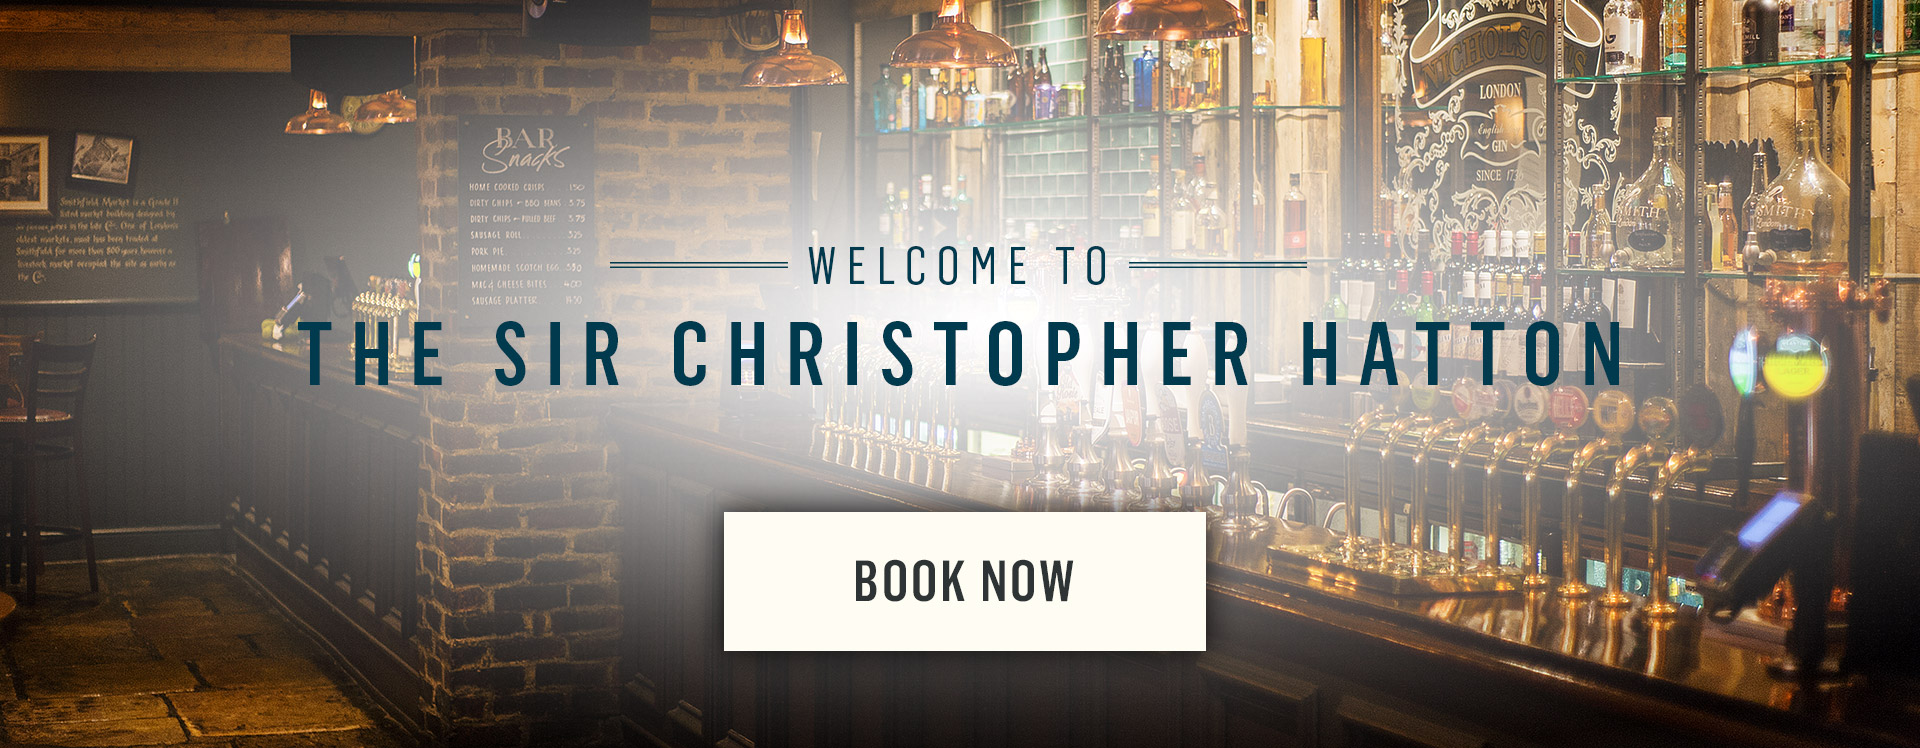 Welcome to The Sir Christopher Hatton - Book Now